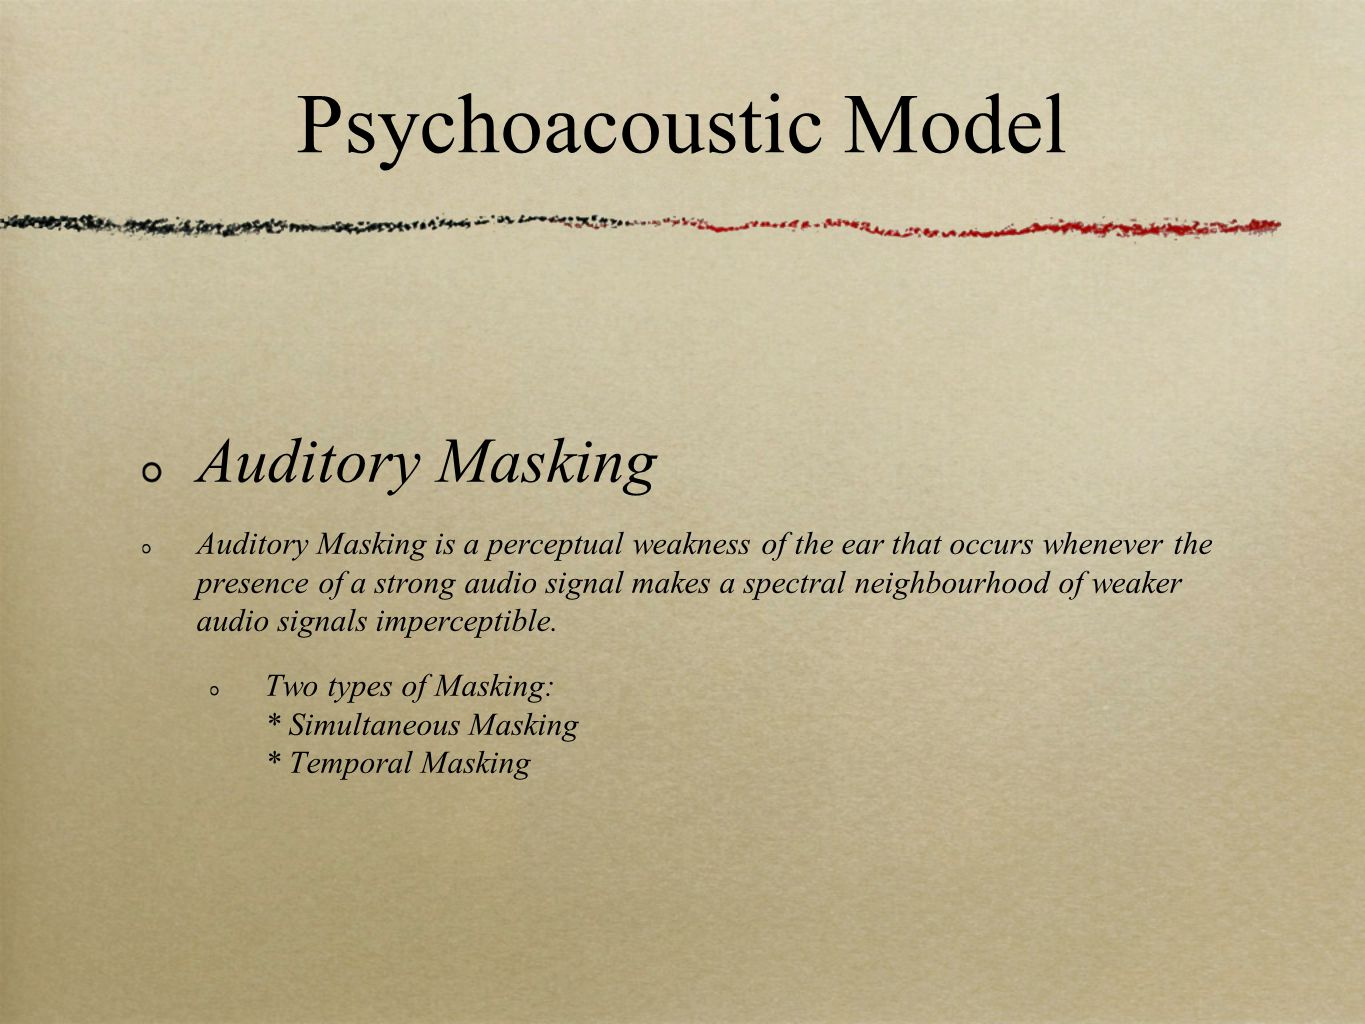 Psychoacoustic Model Auditory Masking Auditory Masking is a perceptual weakness of the ear that occurs whenever the presence of a strong audio signal makes a spectral neighbourhood of weaker audio signals imperceptible.